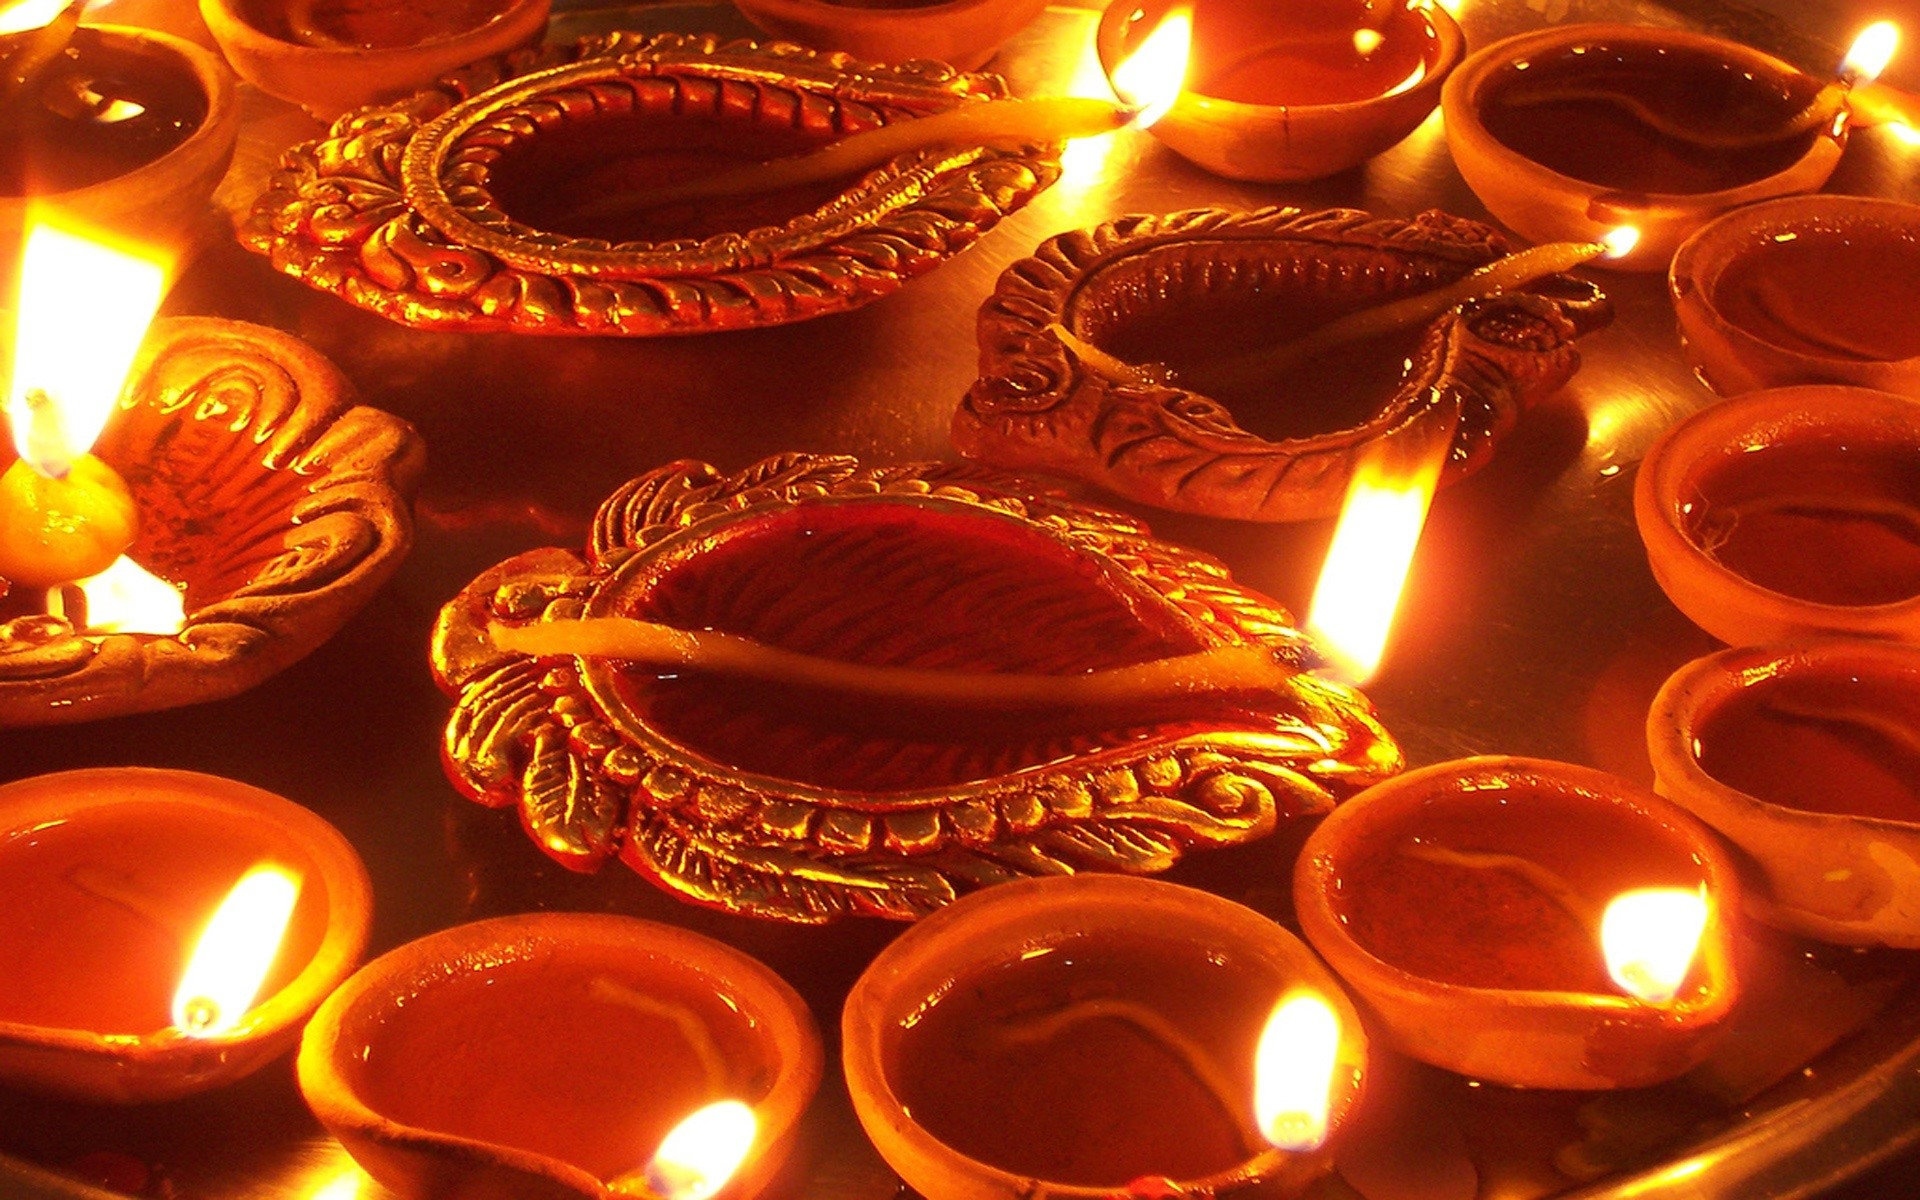 Indian Diwali Festival 2013 Desktop Wallpapers HD Wallpapers 1920x1200